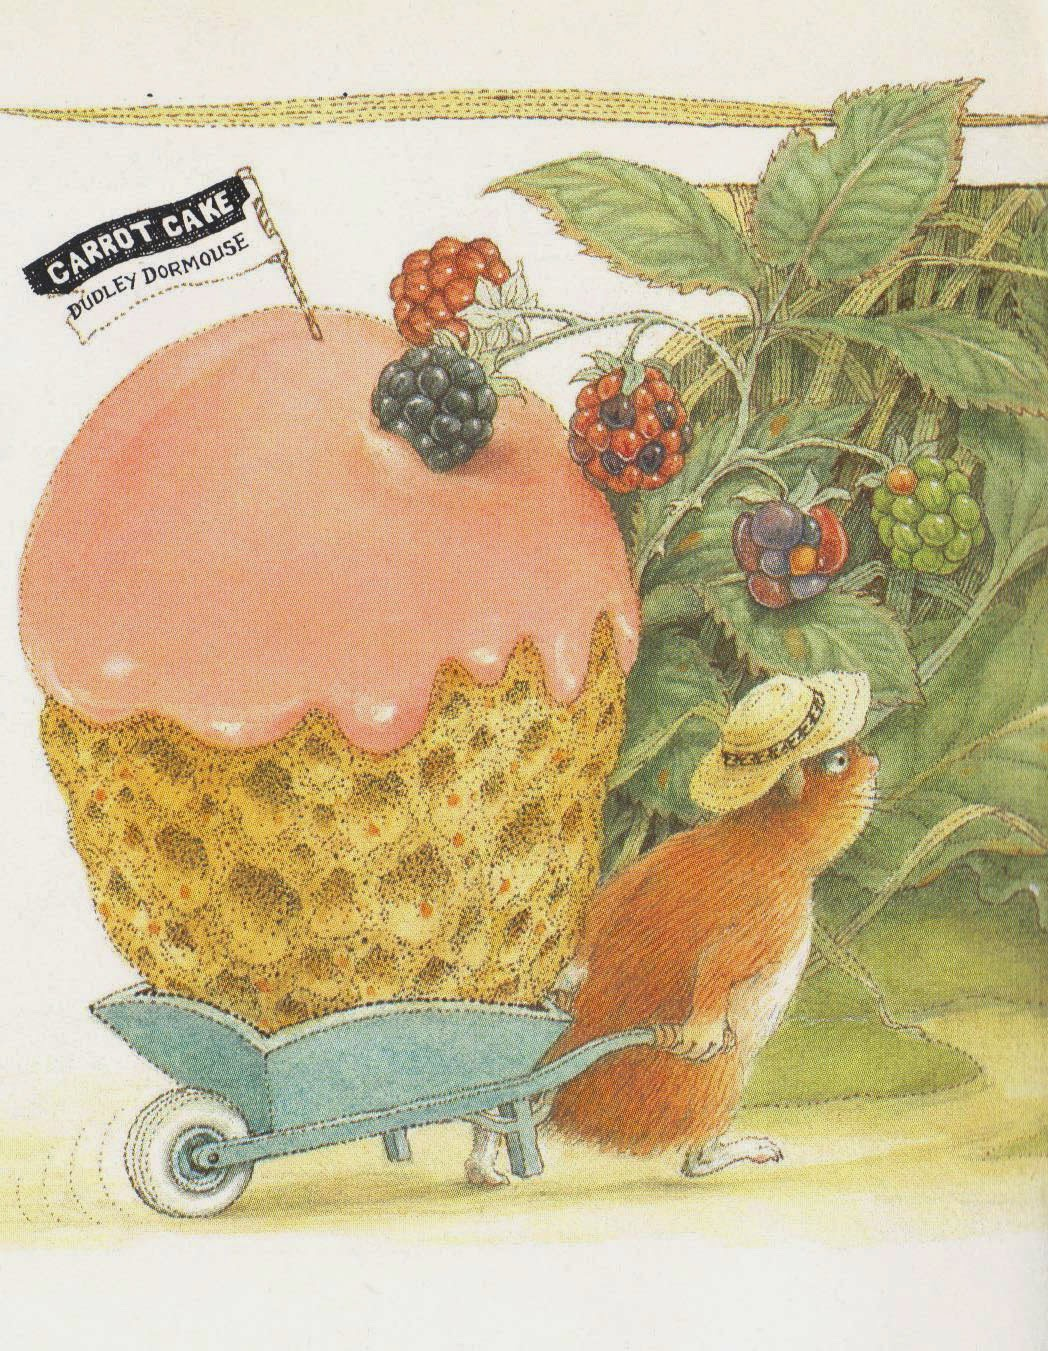 dudley bakes a cake illustration detail by Peter Cross